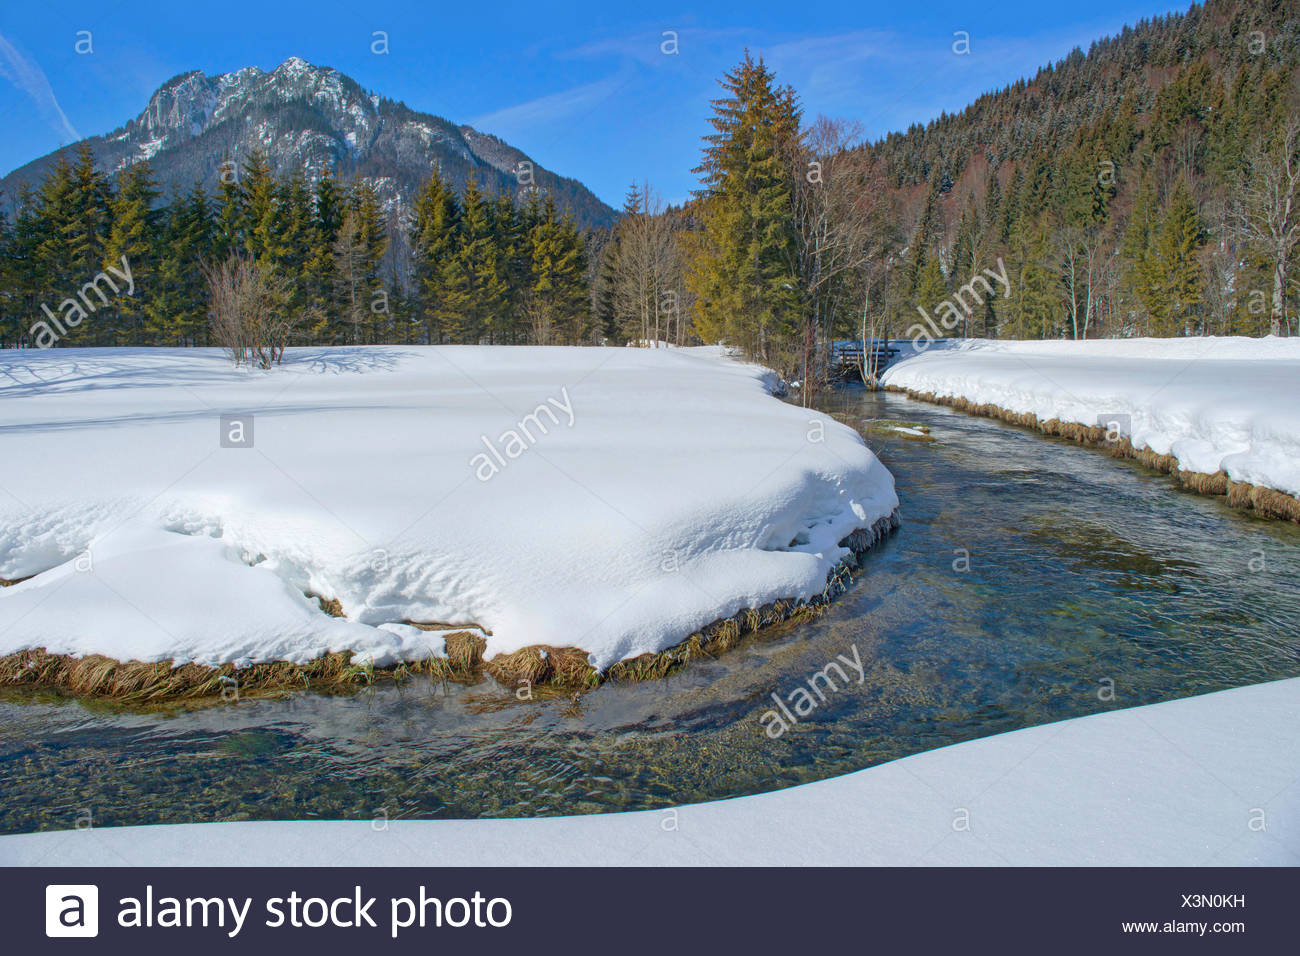 creek in wintry scenery near Ammer sources, with Laber and Ammergauer Alps, Germany, Bavaria, Oberbayern, Upper Bavaria - Stock Image